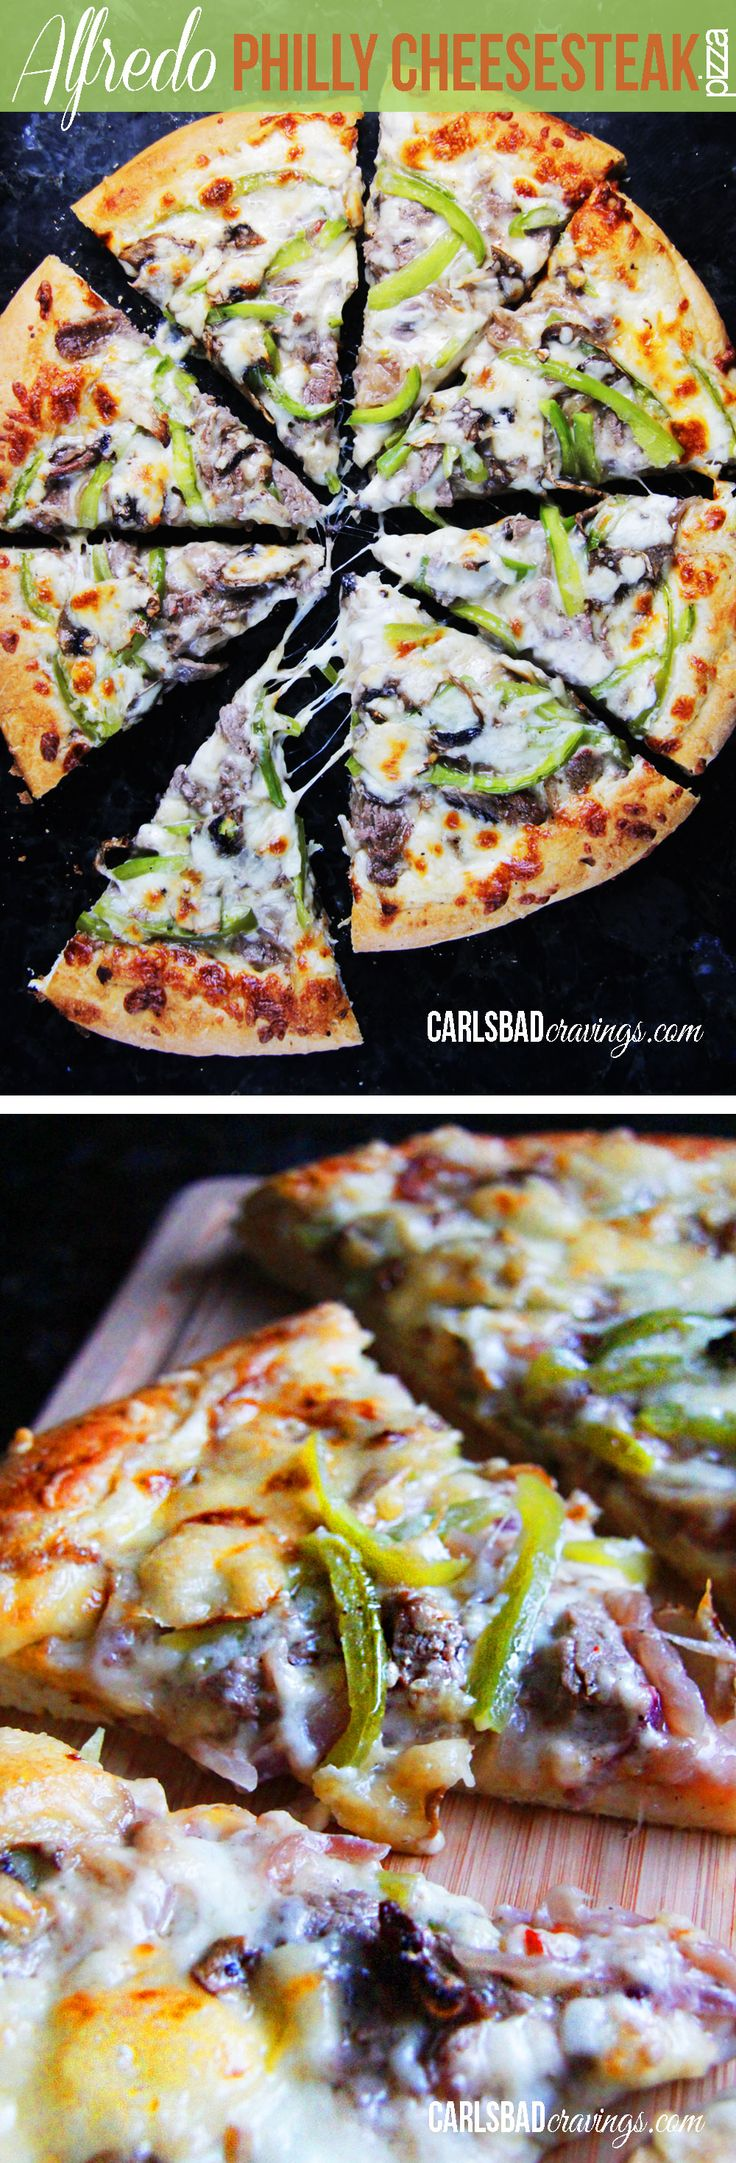 SO EASY! and CRAZY GOOD! Alfredo Philly Cheesesteak Pizza - Thinly sliced steak marinated in Italian Dressing, Worcestershire sauce, garlic and a pinch of red pepper layered on top of Alfredo! | Carlsbad Cravings